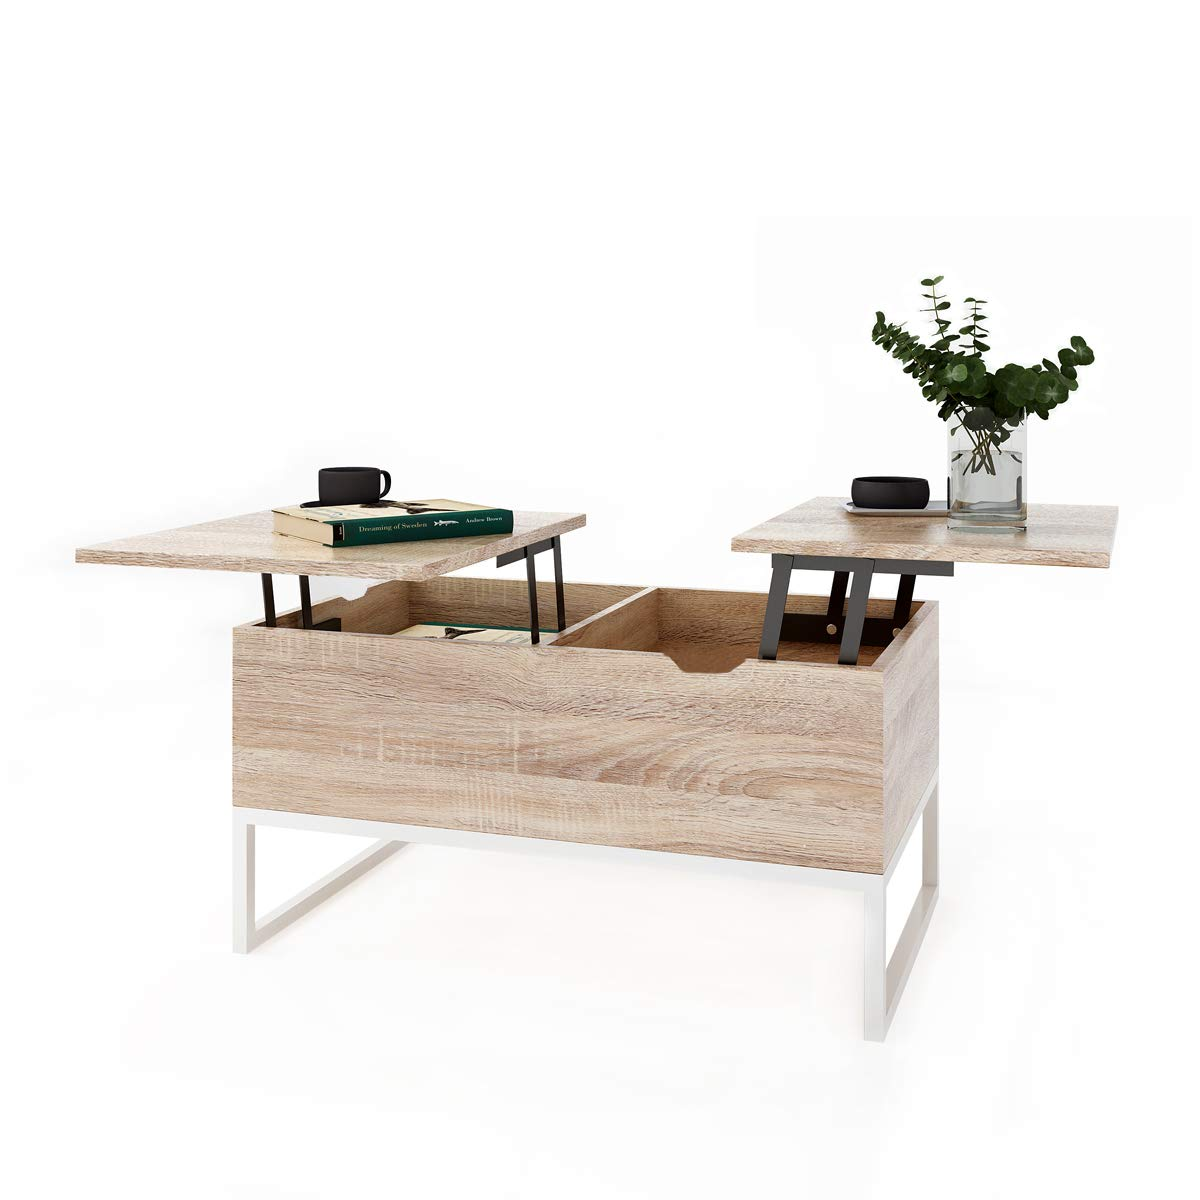 Ease Lift Up Coffee Table With 2 Compartments Lift Function Lift Top Side Table With Storage Space Shelf Functional Design Coffee Table Height Adjustable For Office Kitchen Living Room Buy Online In Luxembourg